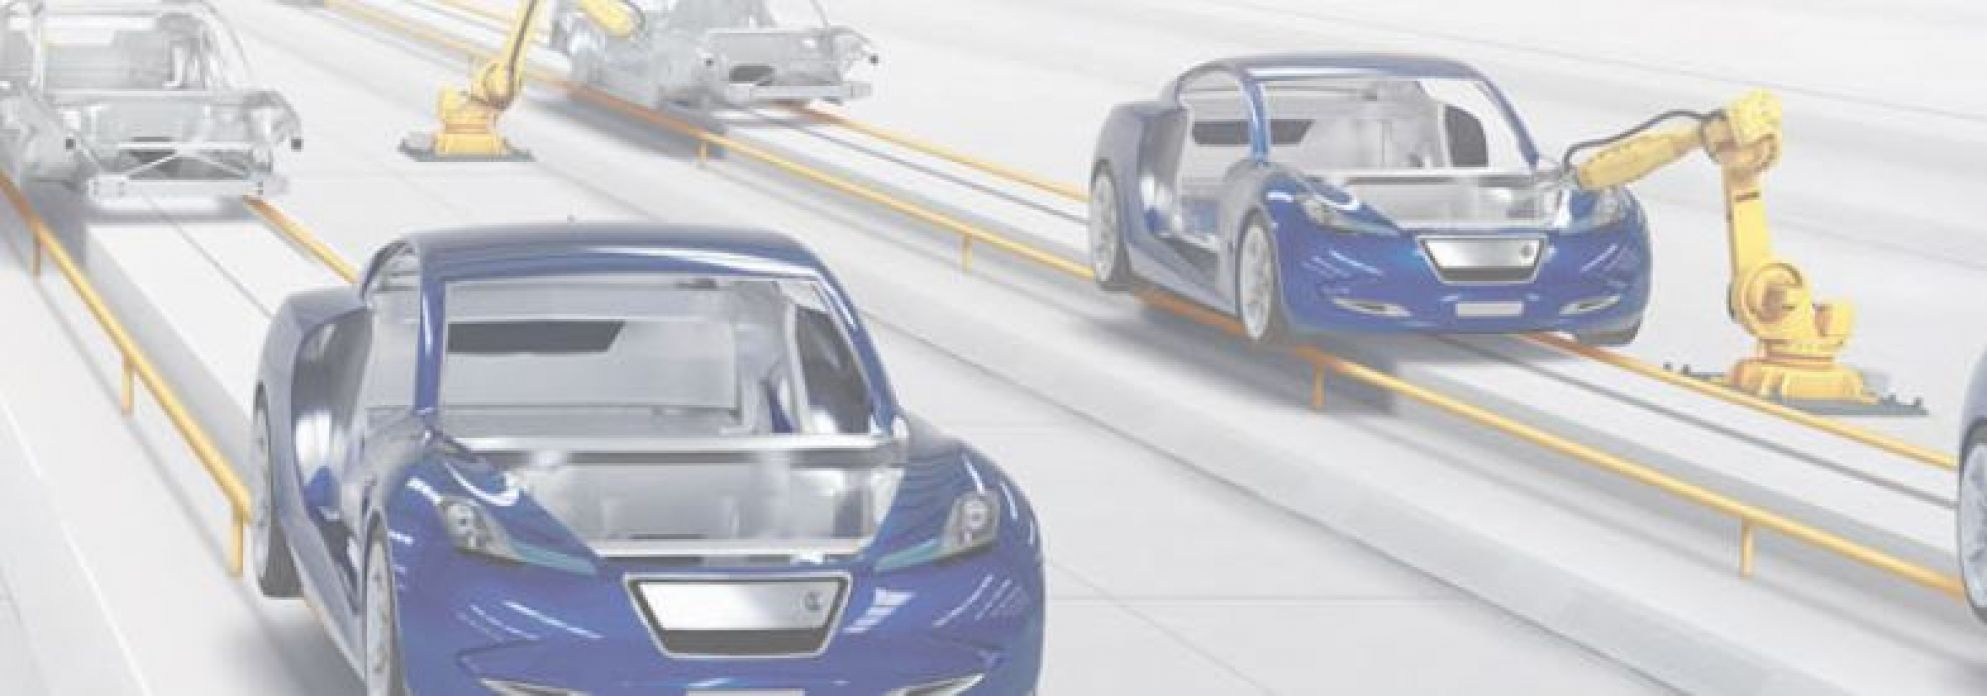 Explore How to Expand Lean Manufacturing with MES Cover > Car Manufacturing > Dassault Systèmes®